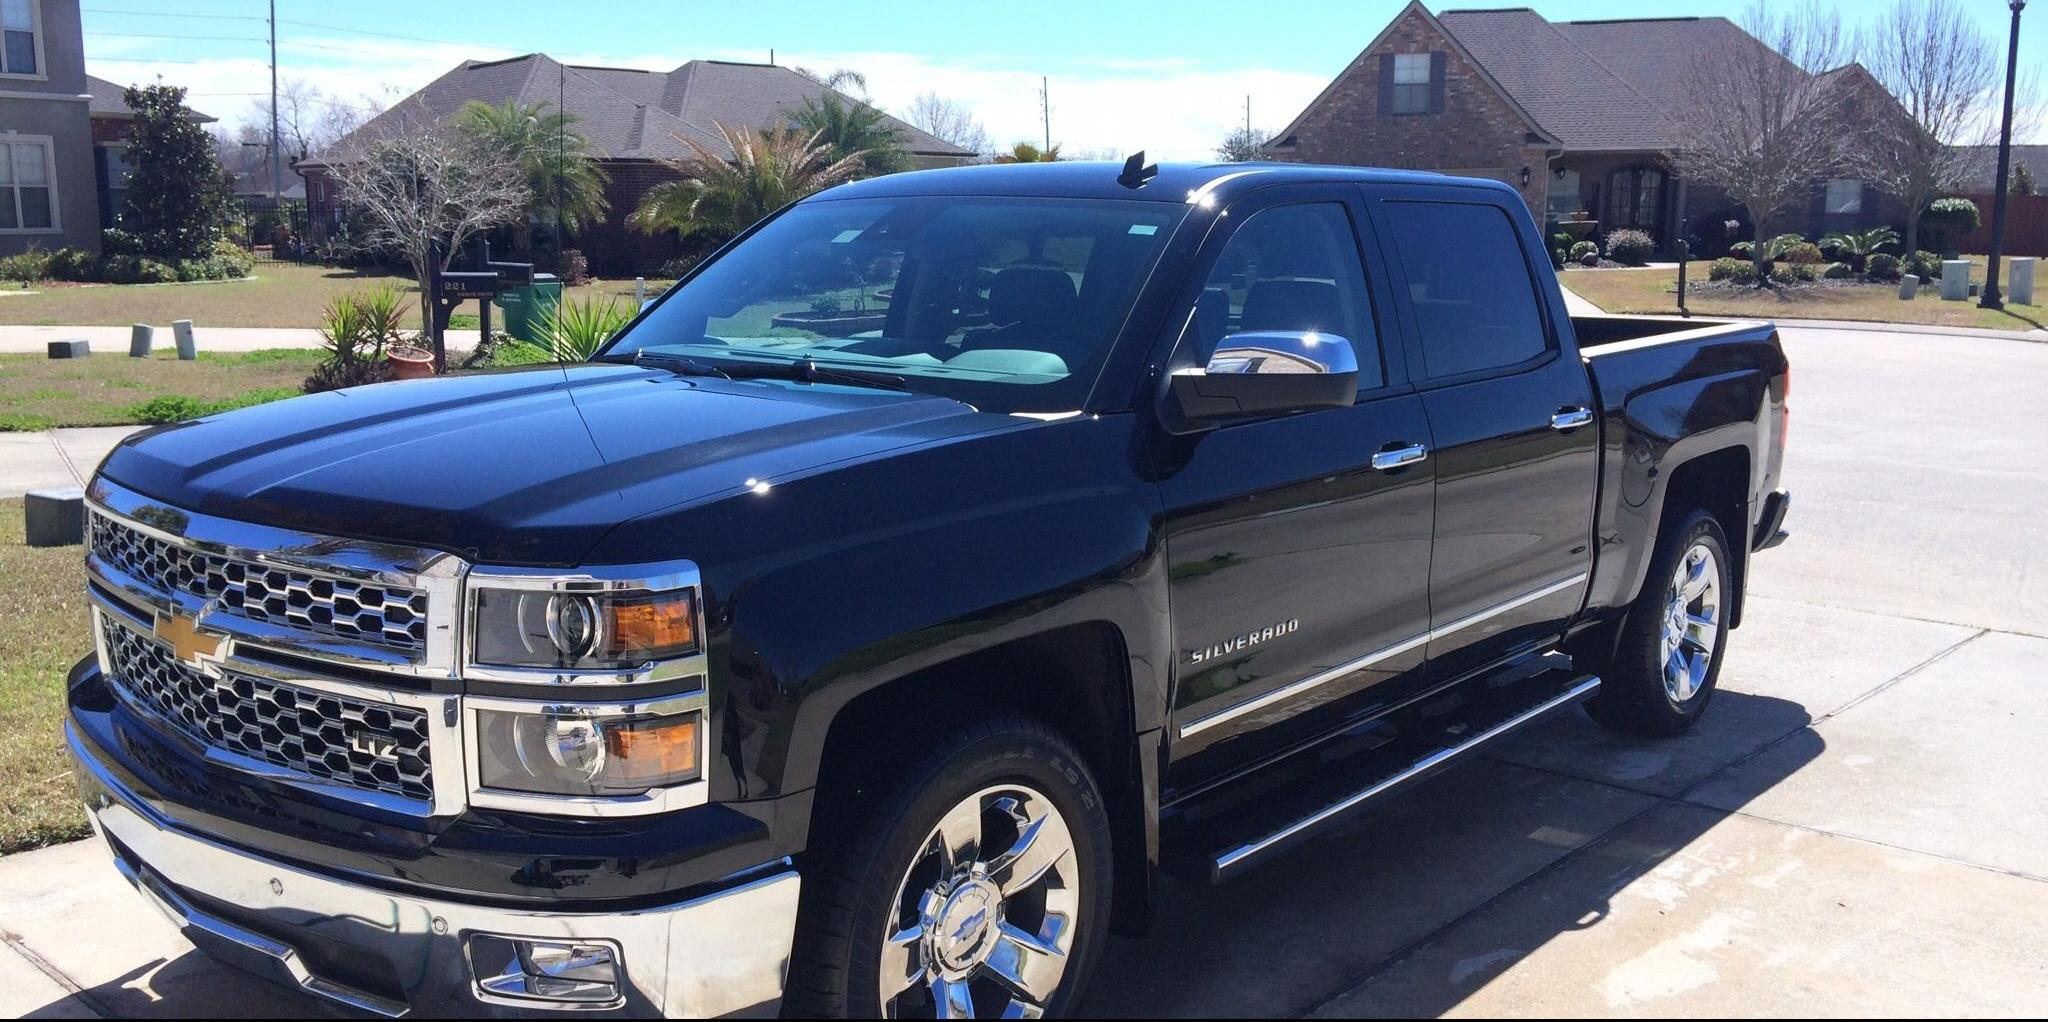 2014 chevrolet silverado 1500 crew cab ltz view all 2014 chevrolet silverado 1500 crew cab ltz. Black Bedroom Furniture Sets. Home Design Ideas